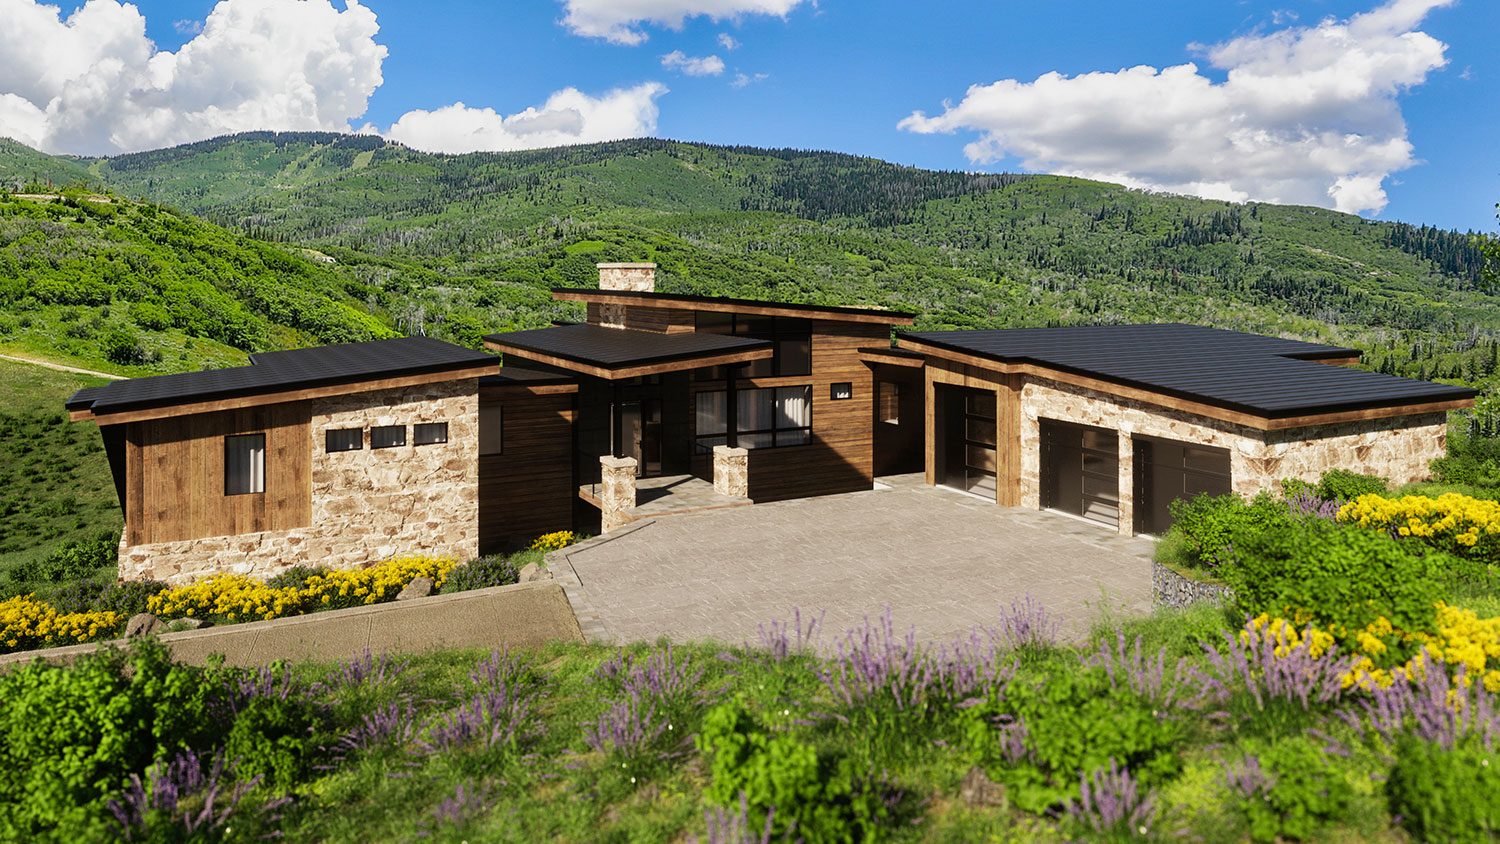 lot 17 spring 2 - Spring Kicks-Off Active Season of Home Building, Headlined by the Mountain Modern Trilogy Residence